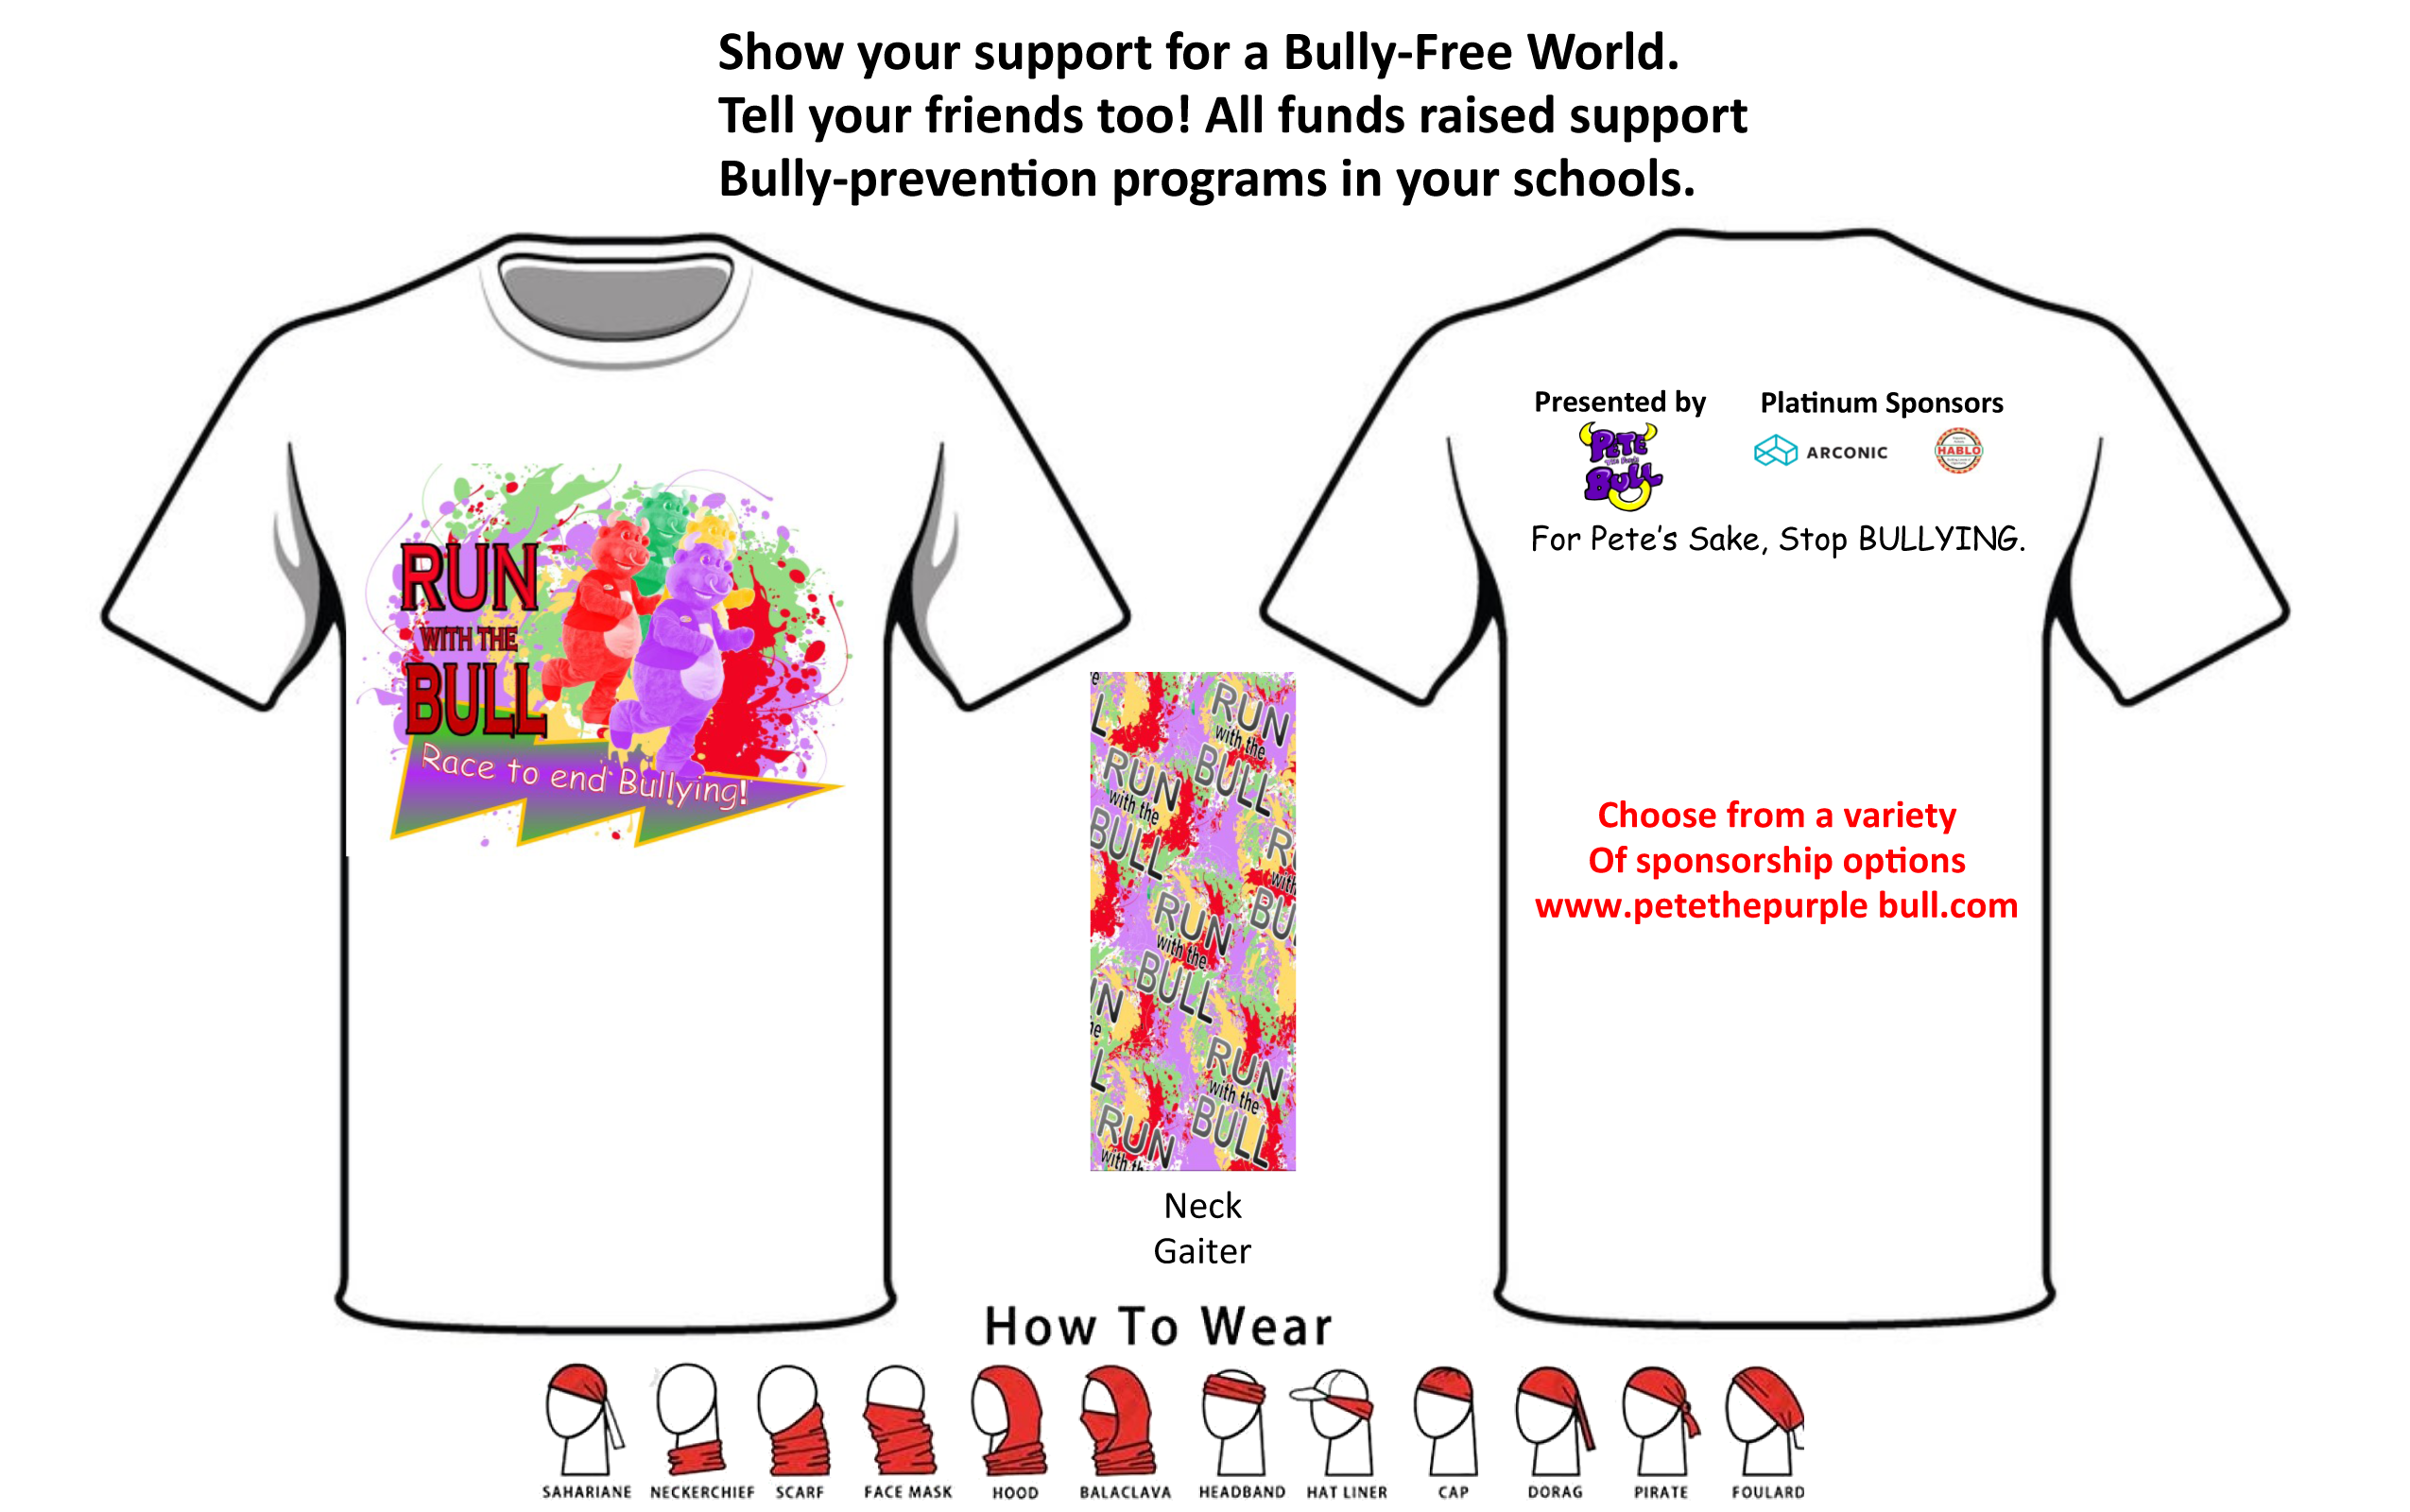 2019 Run With the Bull 5K T-shirt Order Form Snapshot